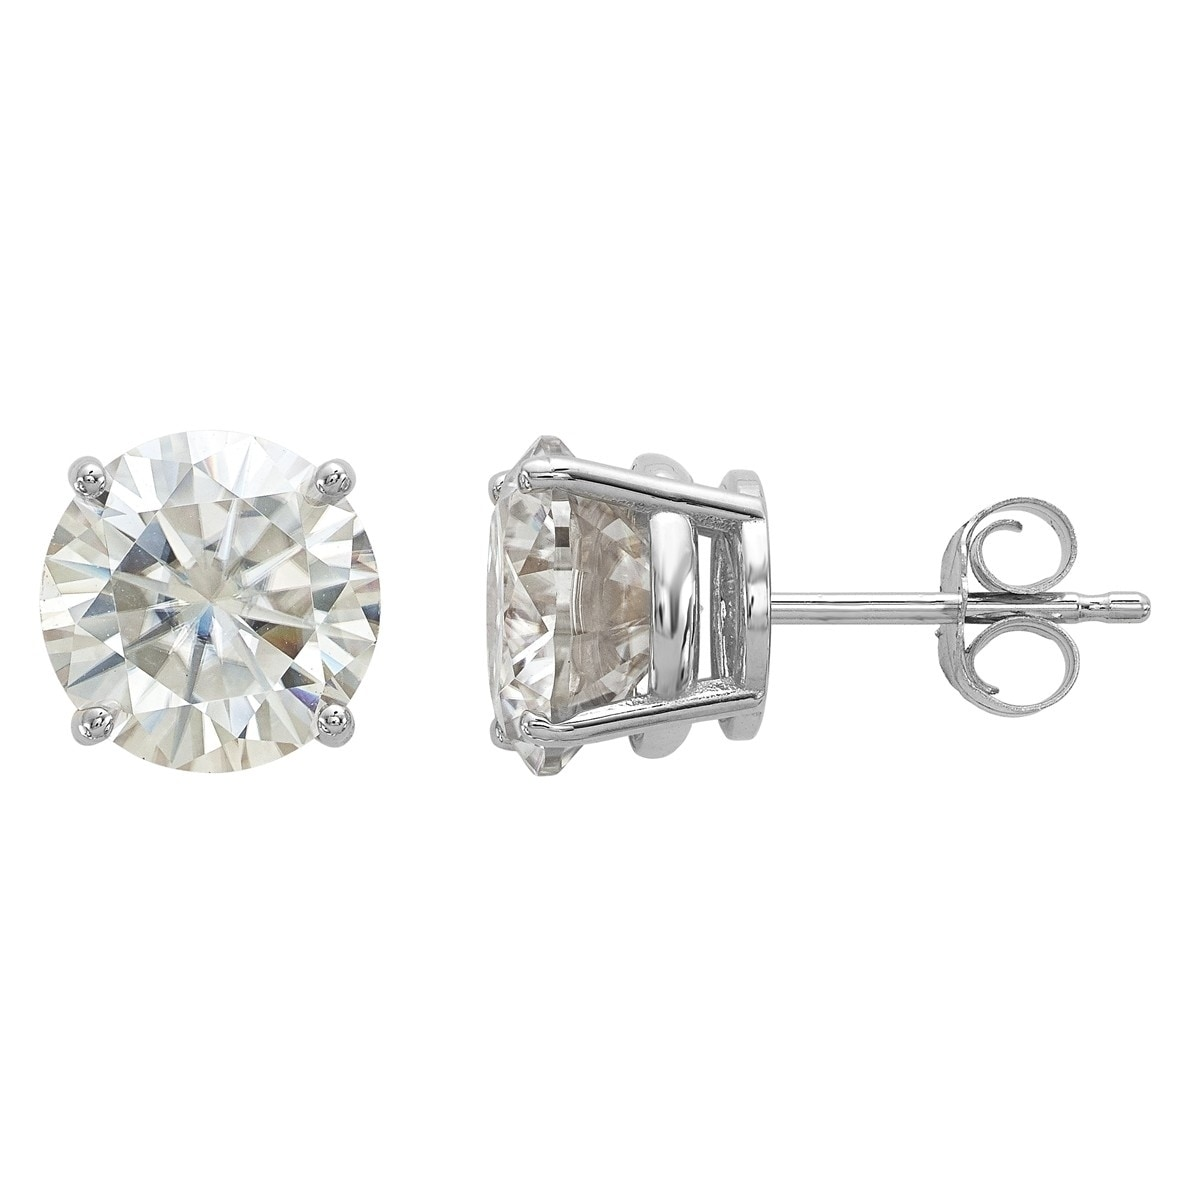 4a40a4a8d Shop Versil 14 Karat White Gold 8.0mm Round True Light Moissanite Basket  Post Earrings - On Sale - Free Shipping Today - Overstock - 19212905